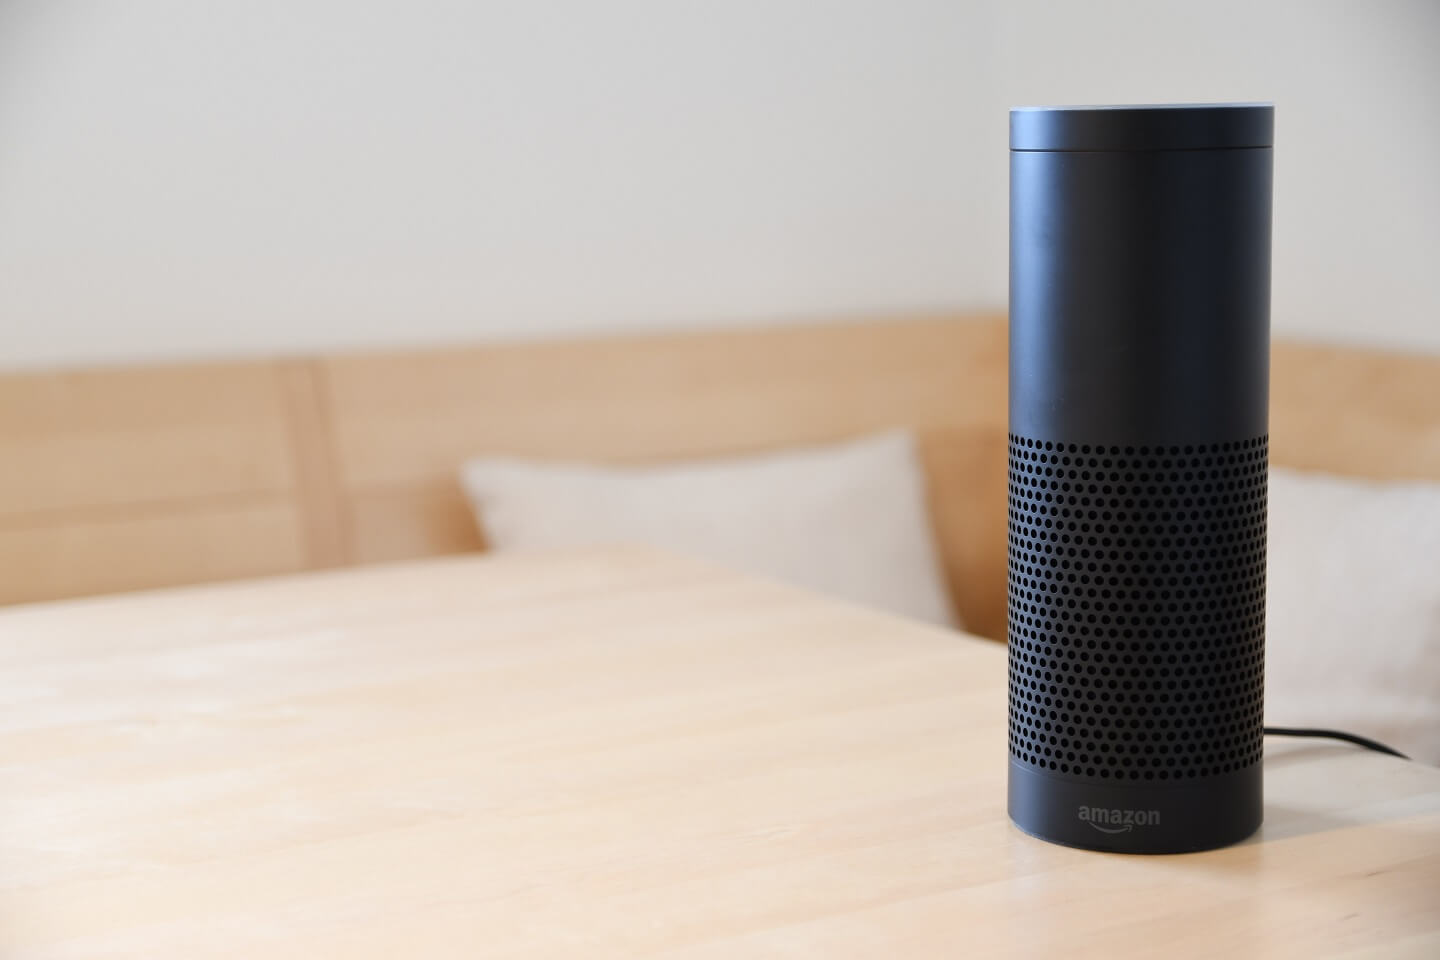 A black Amazon Echo speaker (with Amazon Alexa on it)